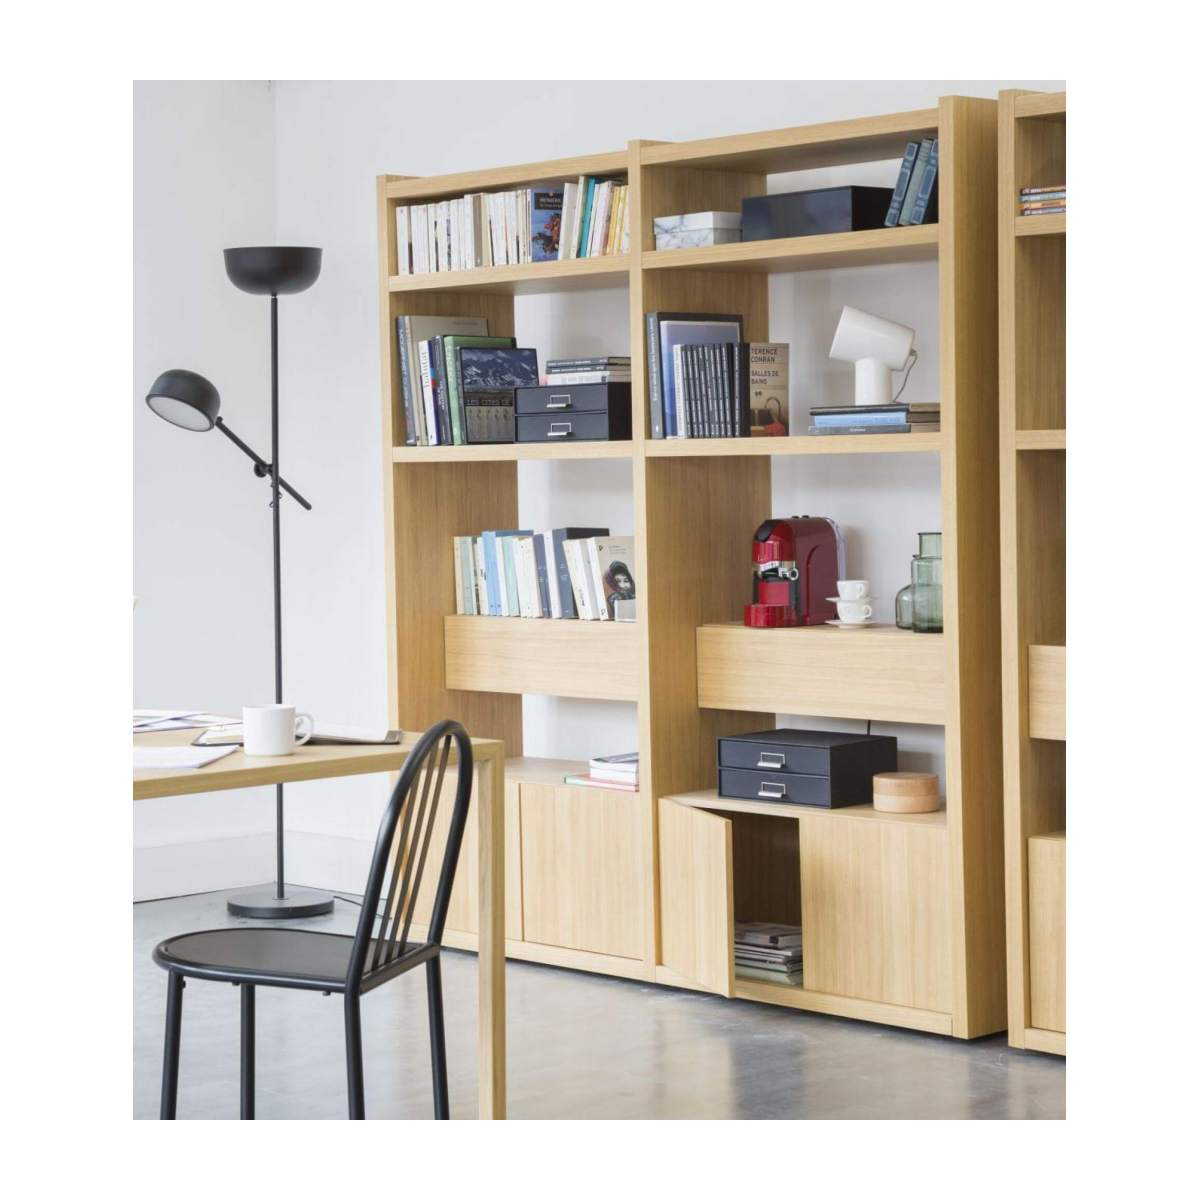 Extension for small oak shelving unit n°4